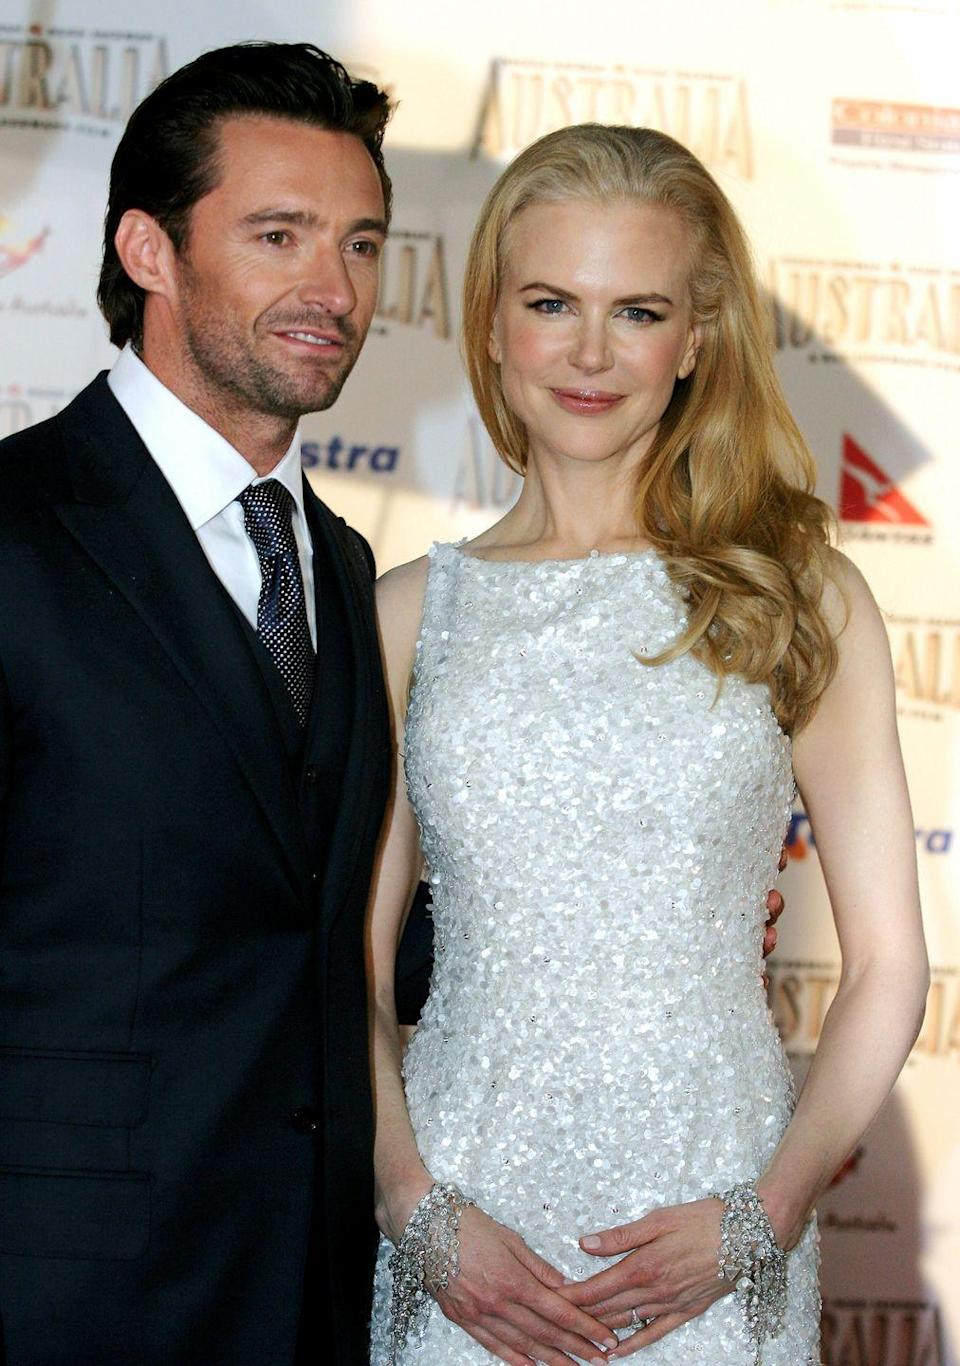 "<p>Aussie actors Nicole Kidman and Hugh Jackman's turn in Baz Luhrmann's epic <em>Australia</em> required a lot of on-screen passion. While the two ended up getting things right eventually, it took some preparation. ""It's never particularly comfortable making out with someone in front of 70 people,"" <a href=""http://www.oprah.com/oprahshow/the-stars-of-australia_1"" rel=""nofollow noopener"" target=""_blank"" data-ylk=""slk:Jackman said."" class=""link rapid-noclick-resp"">Jackman said. </a>""That's really not something that turns me on.""</p>"